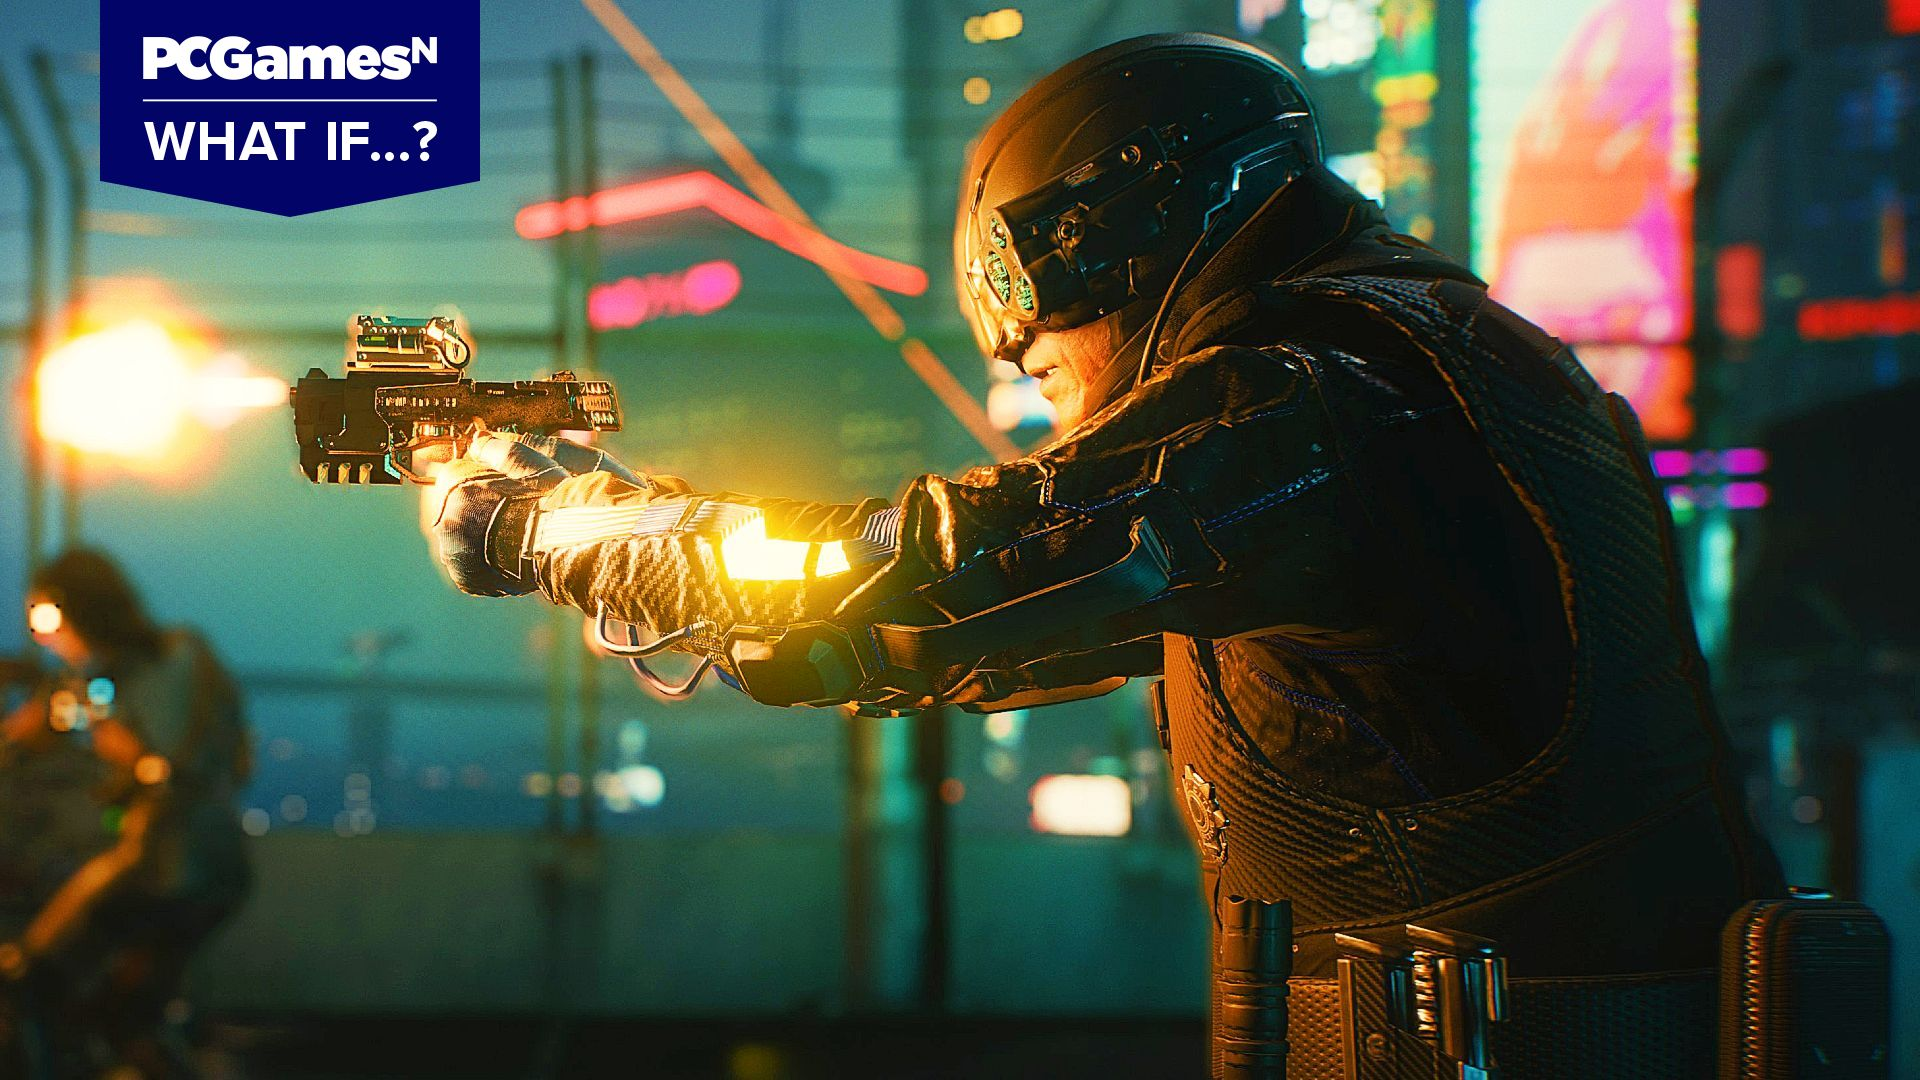 What if: Cyberpunk 2077 came out right now?